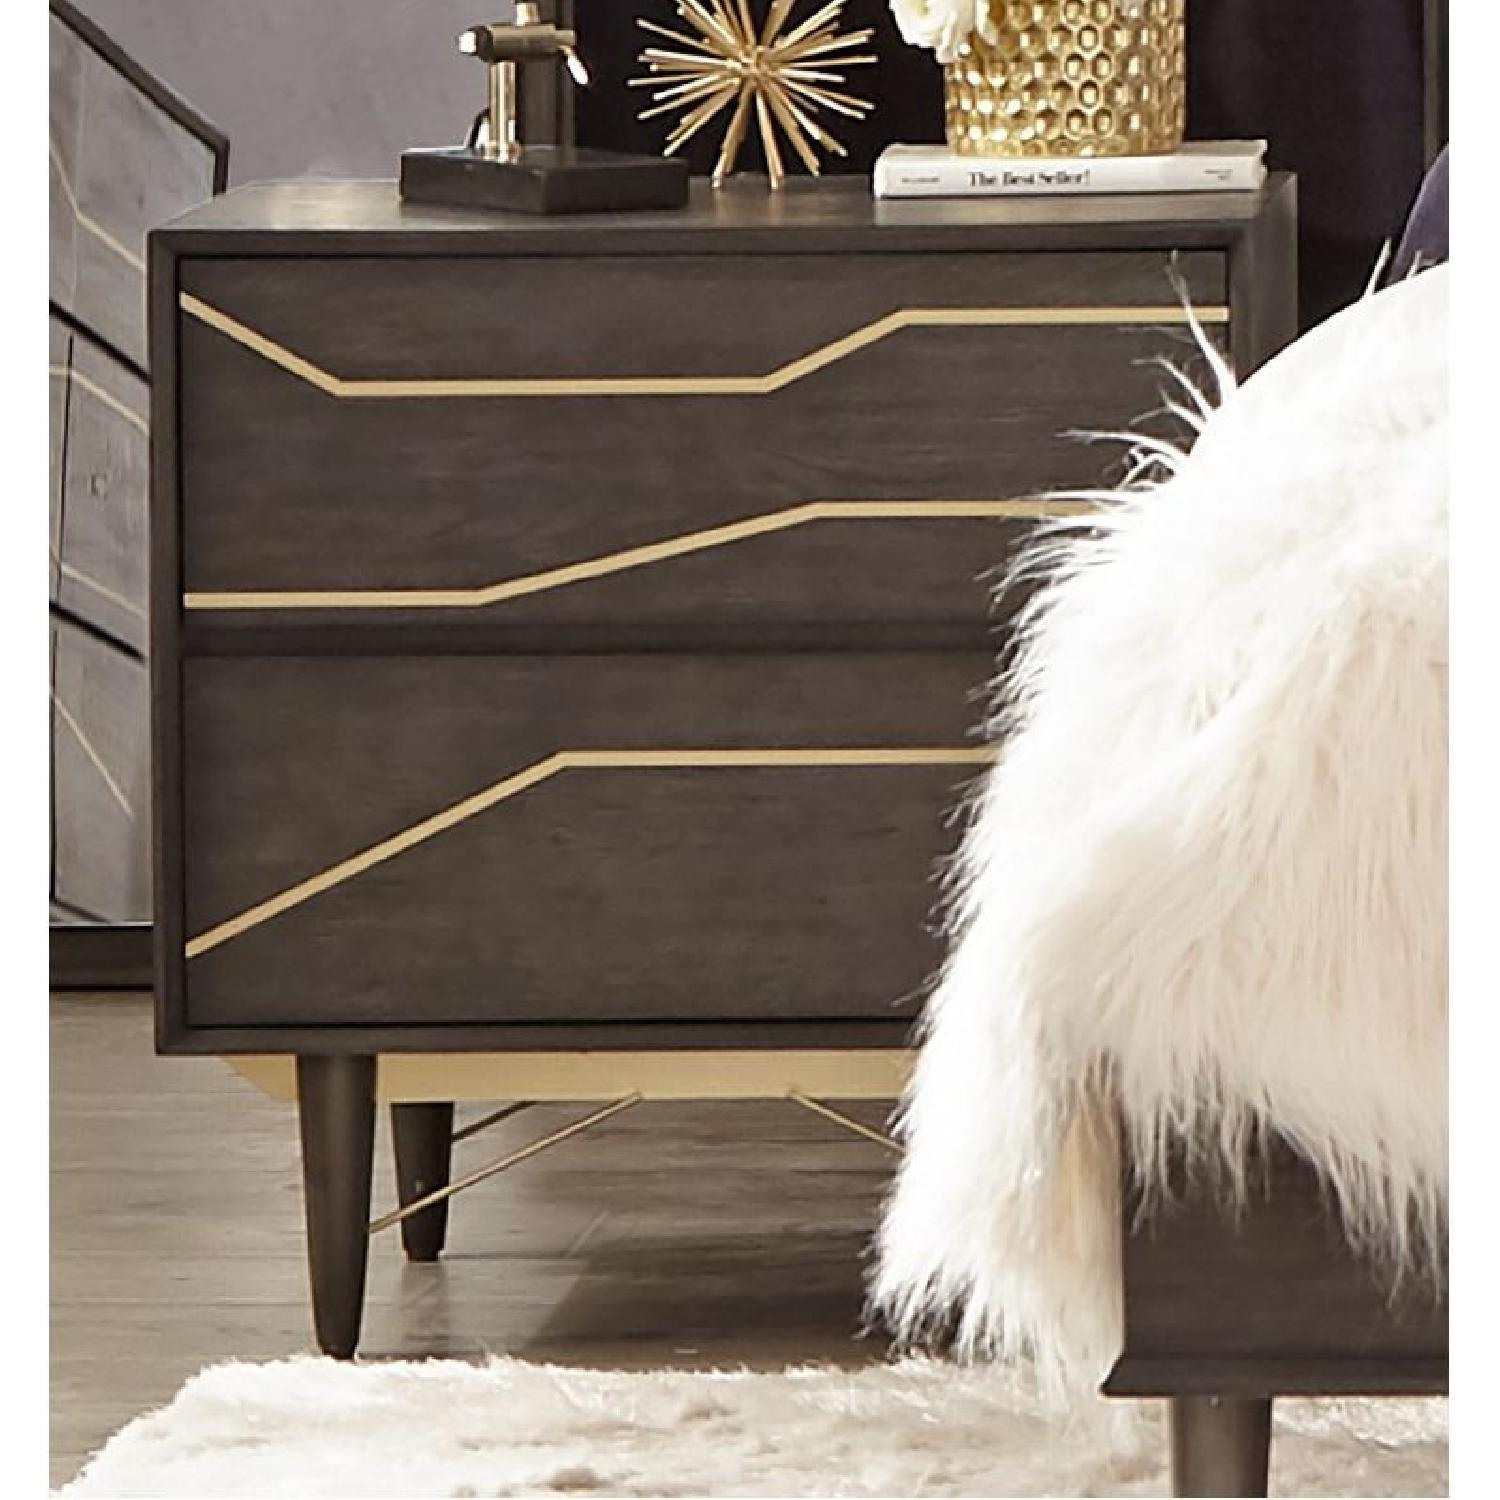 Modern Nightstand in Graphite Finish w/ Gold Color Inlay - image-4